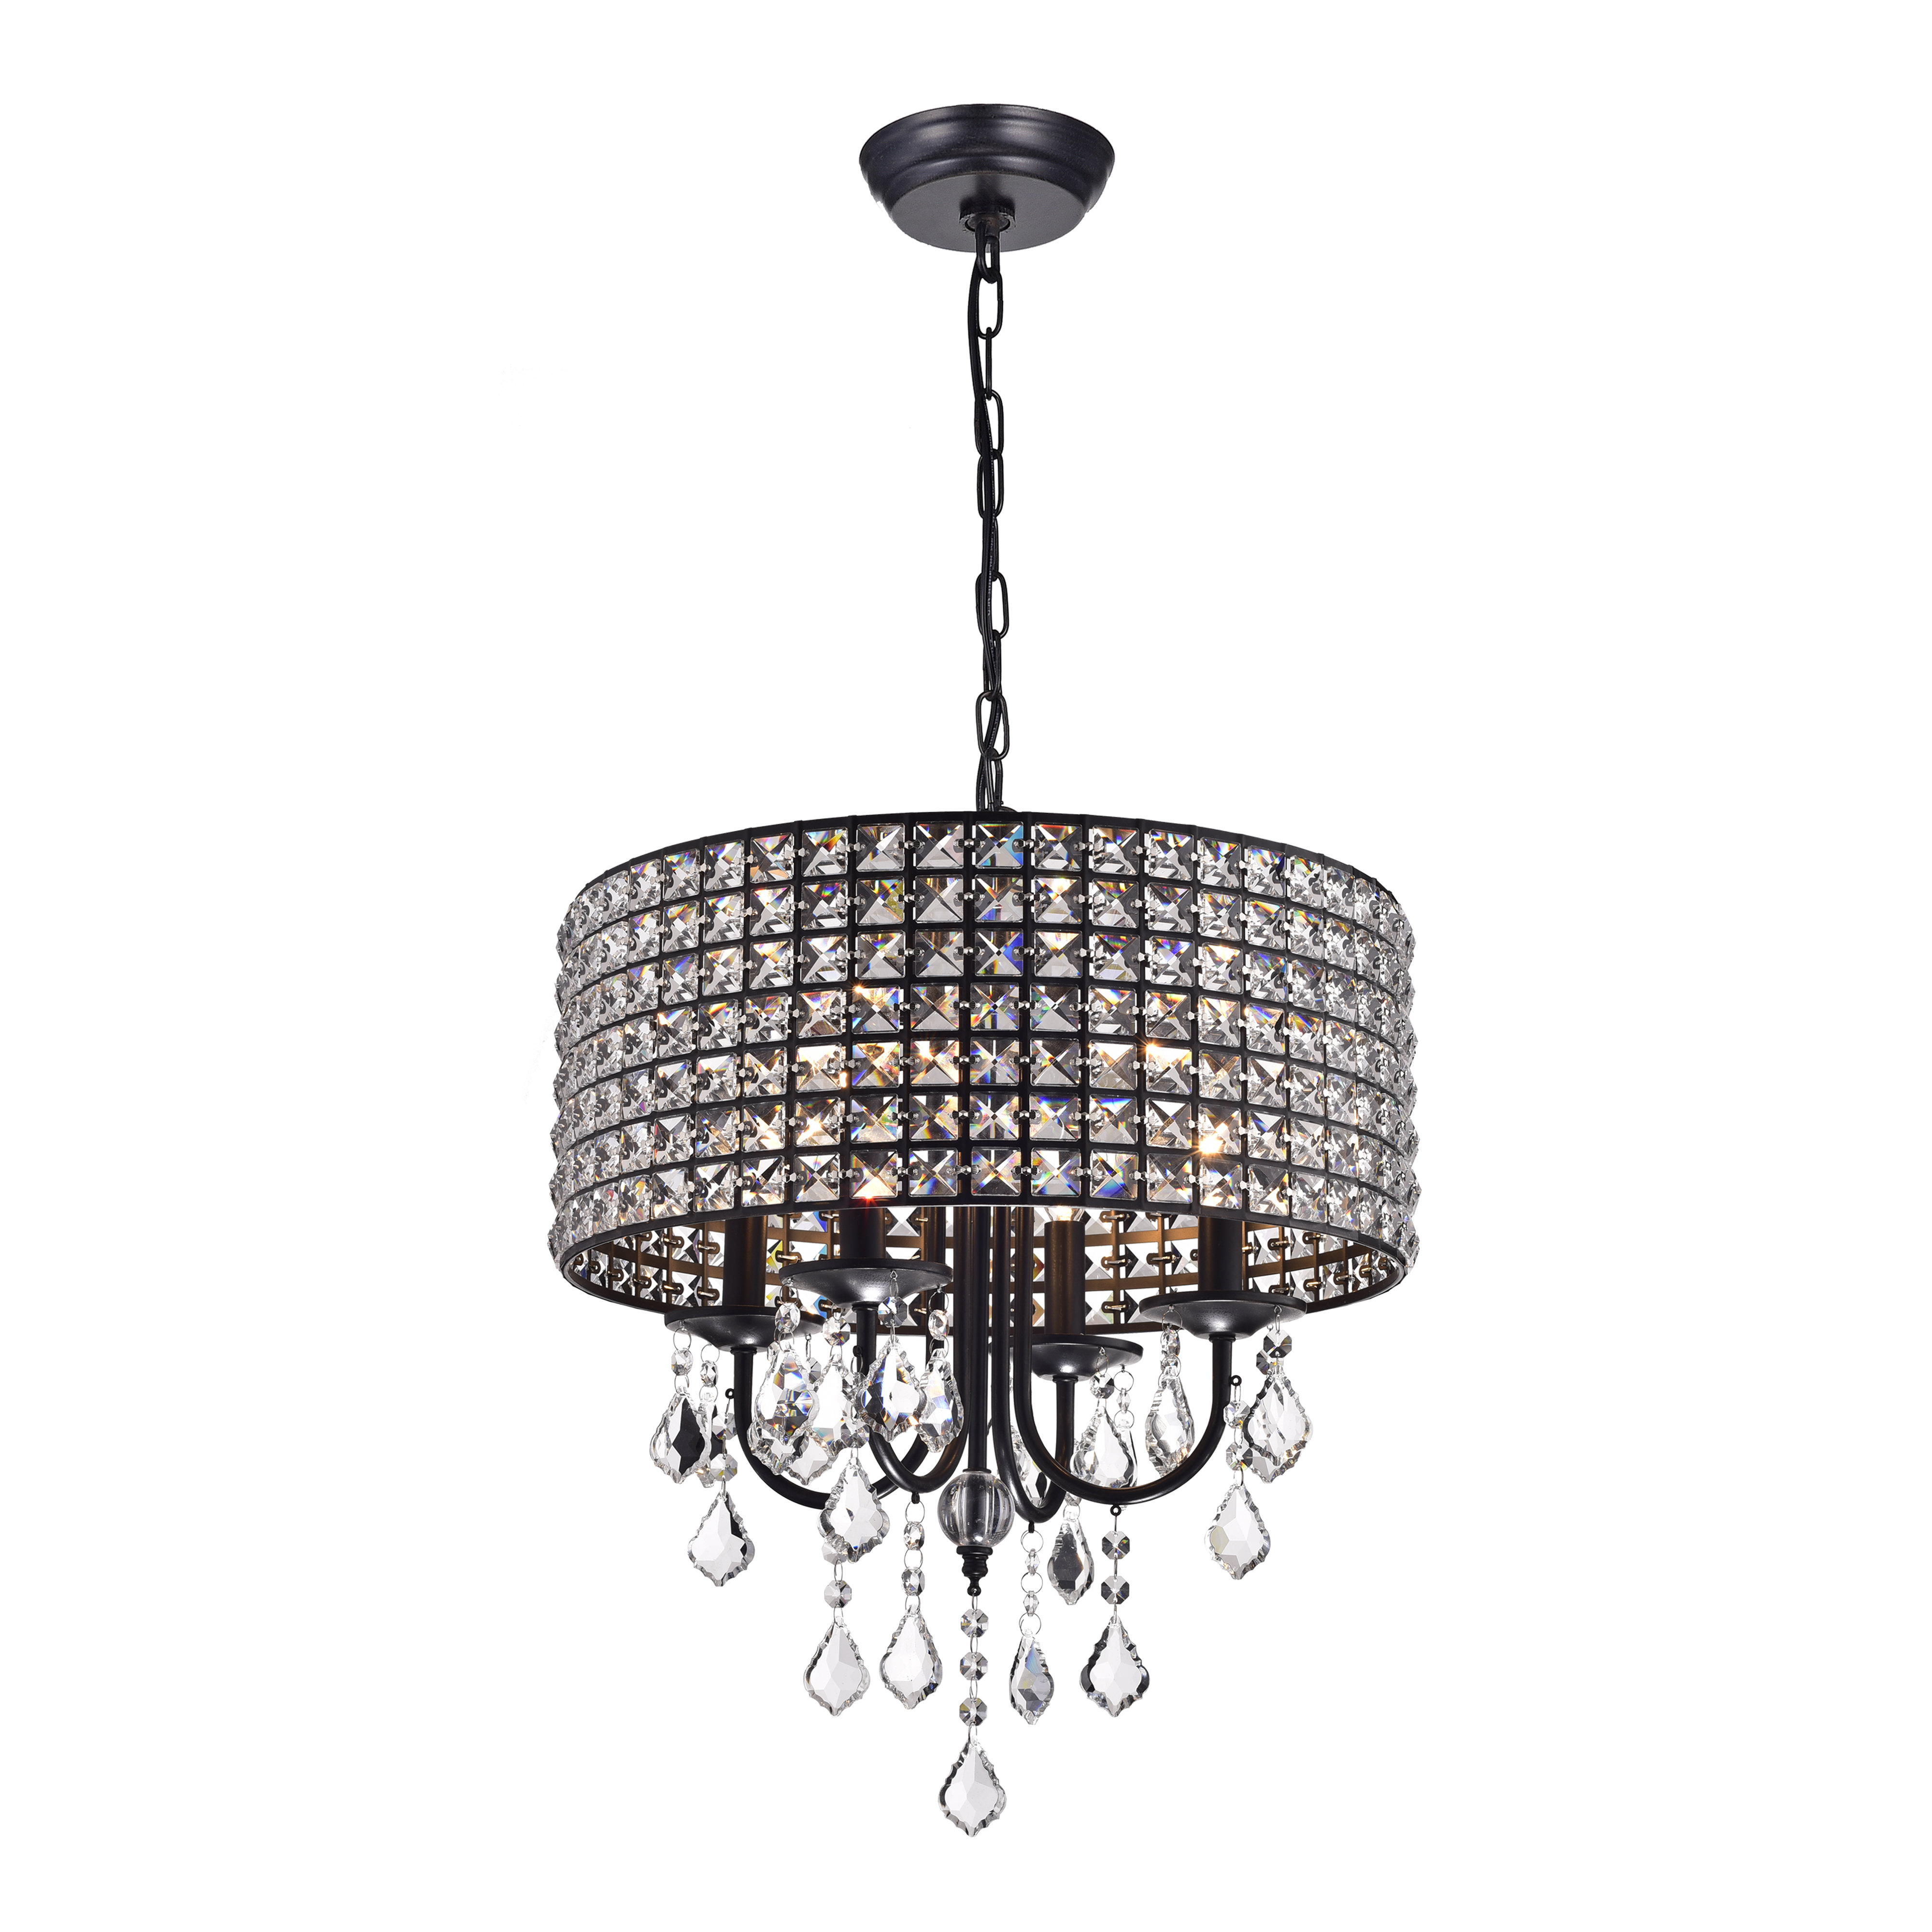 Famous Albano 4 Light Crystal Chandeliers Intended For Willa Arlo Interiors Albano 4 Light Crystal Chandelier (View 8 of 20)